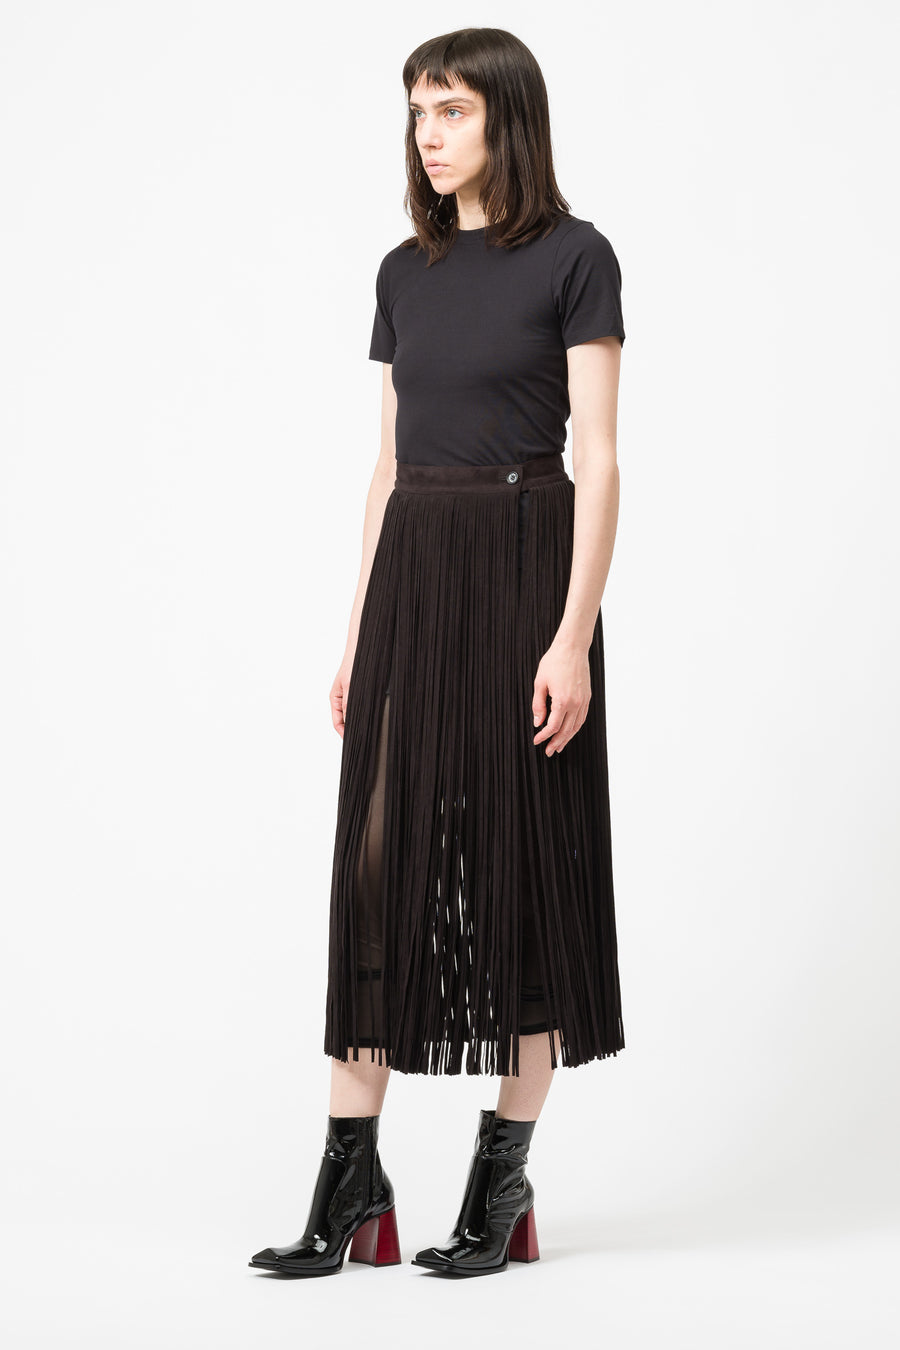 Hyke Woven Skirt in Black - Notre